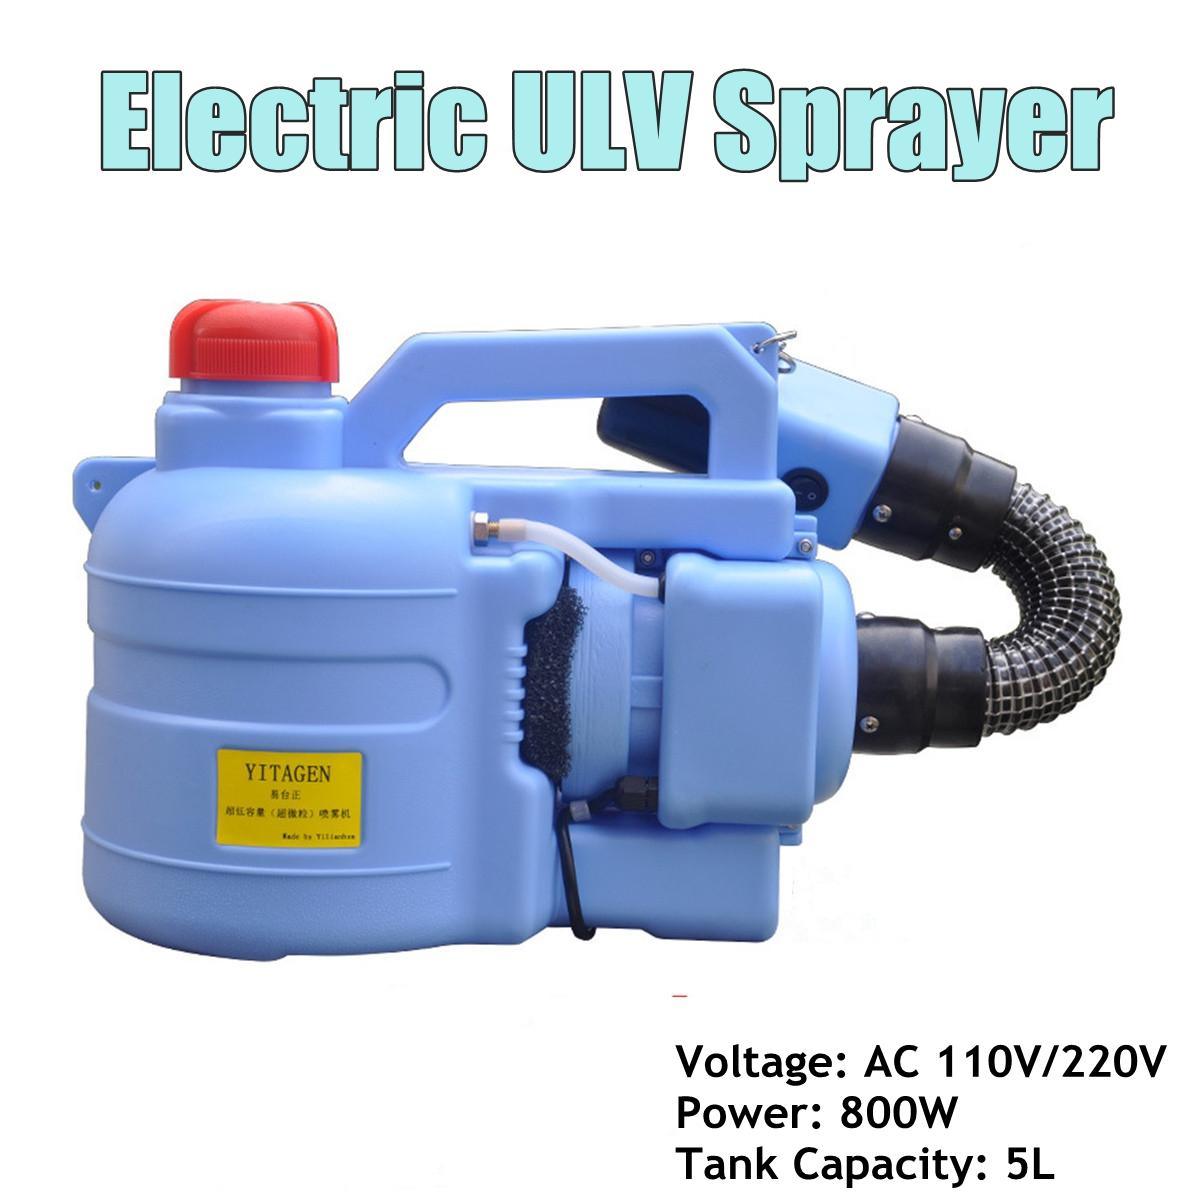 10V/220V 800W 5L Sprayer Mosquito Killer Disinfection Machine Insecticide Atomizer Fight Drugs Electric ULV Fogger Intelligent